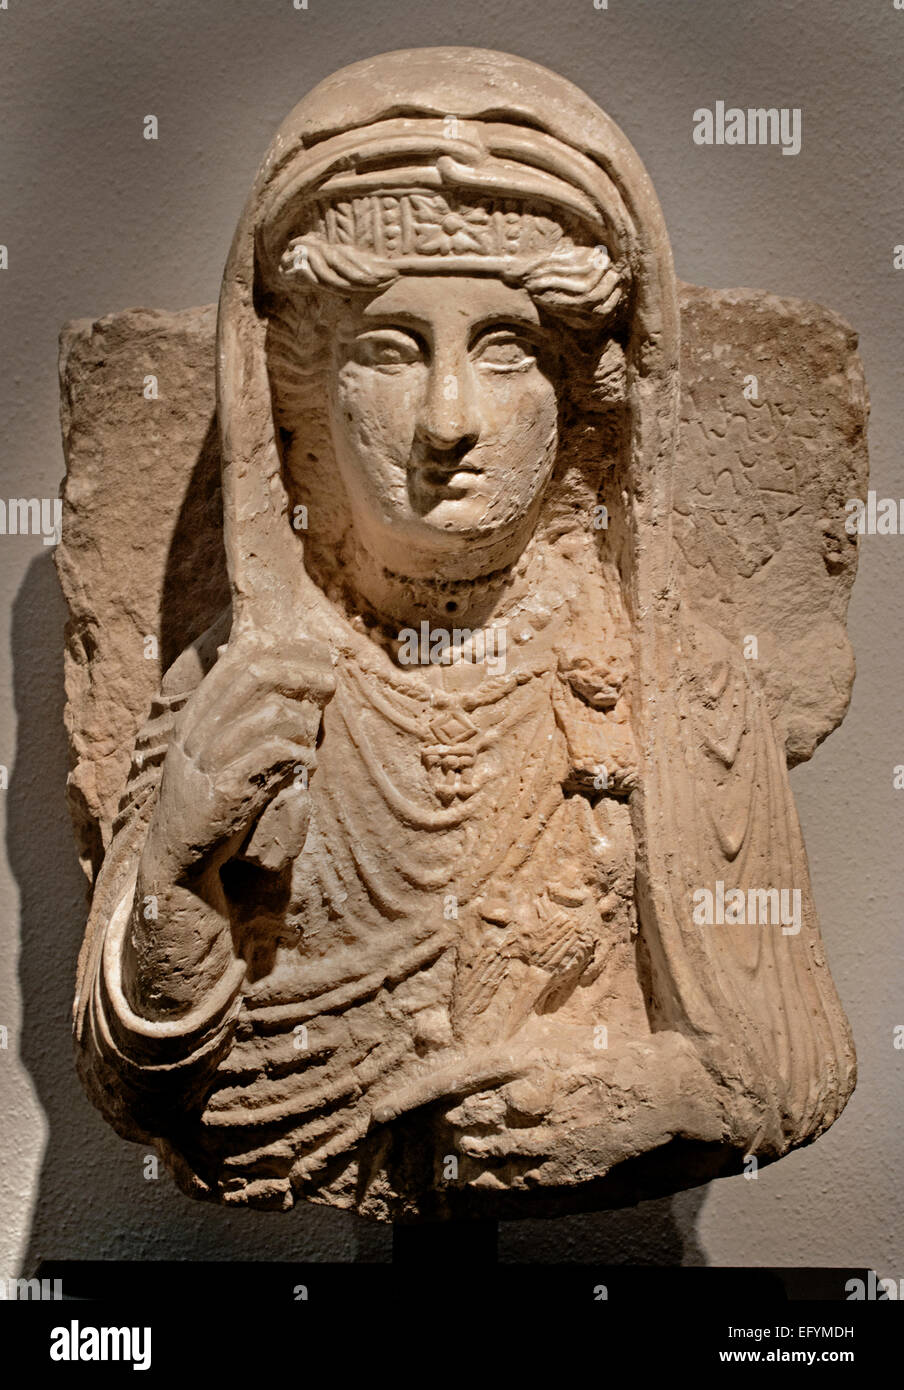 Funerary relief with bust of woman from Palmyra 2 Century   Germanic Museum Cologne Germany - Stock Image